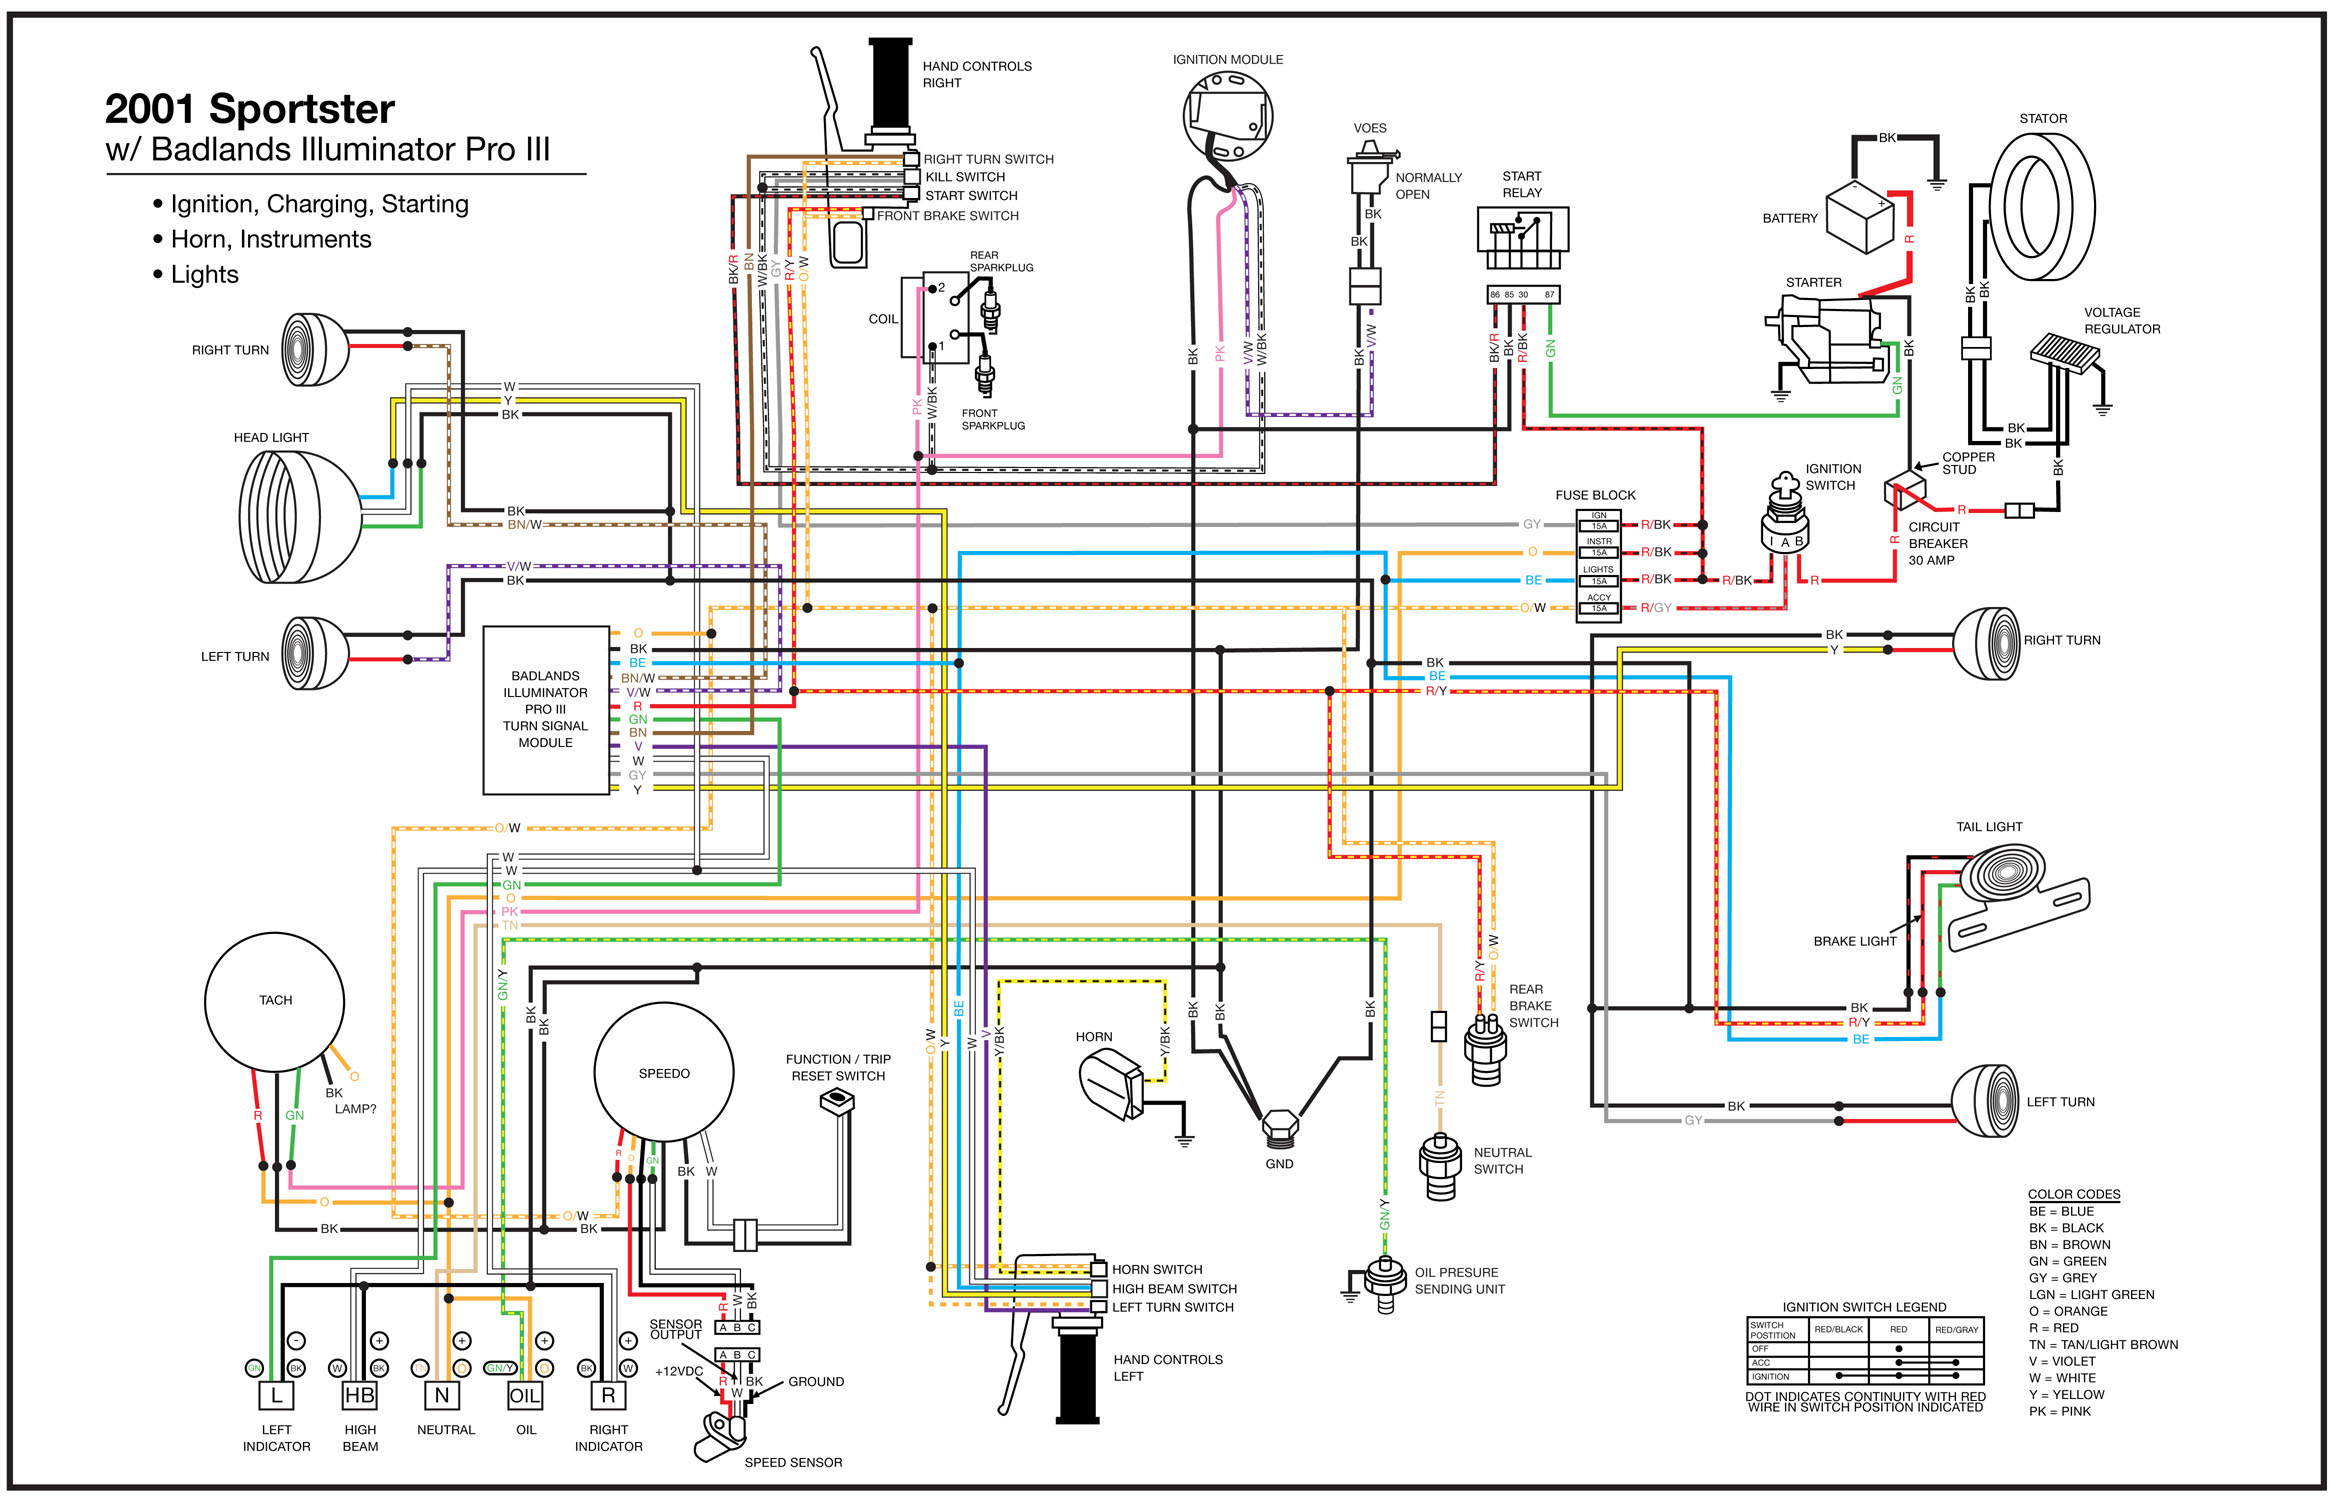 Sportster Badlands_Wiring_Diagram?resize=640%2C410&ssl=1 evo sportster chopper wiring diagram hobbiesxstyle evo sportster ignition wiring diagram at alyssarenee.co